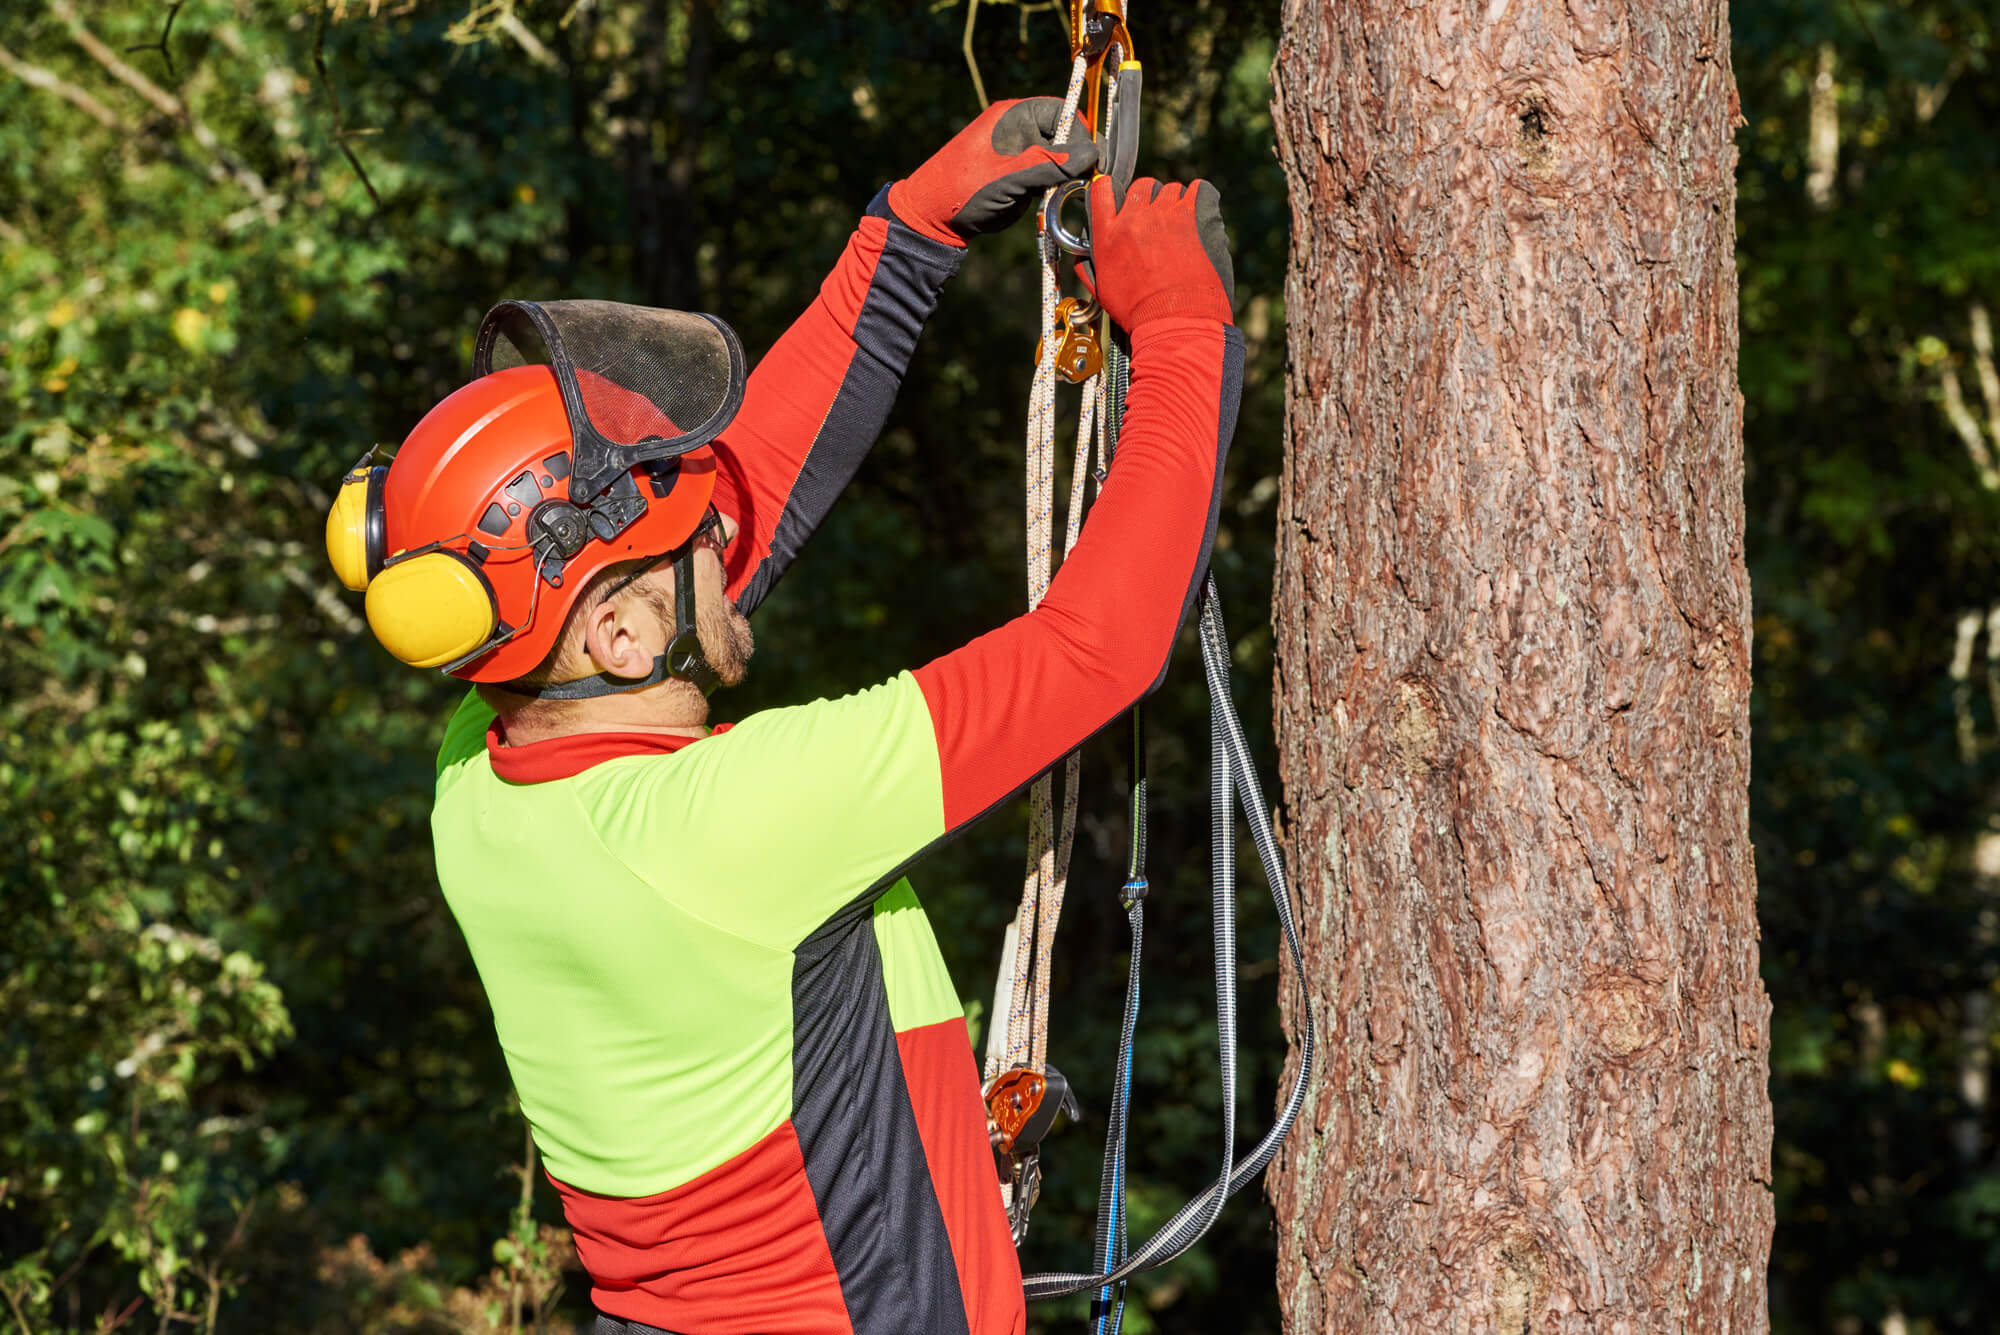 Polk County FL Tree Trimming and Stump Grinding Services Header Image-We Offer Tree Trimming Services, Tree Removal, Tree Pruning, Tree Cutting, Residential and Commercial Tree Trimming Services, Storm Damage, Emergency Tree Removal, Land Clearing, Tree Companies, Tree Care Service, Stump Grinding, and we're the Best Tree Trimming Company Near You Guaranteed!